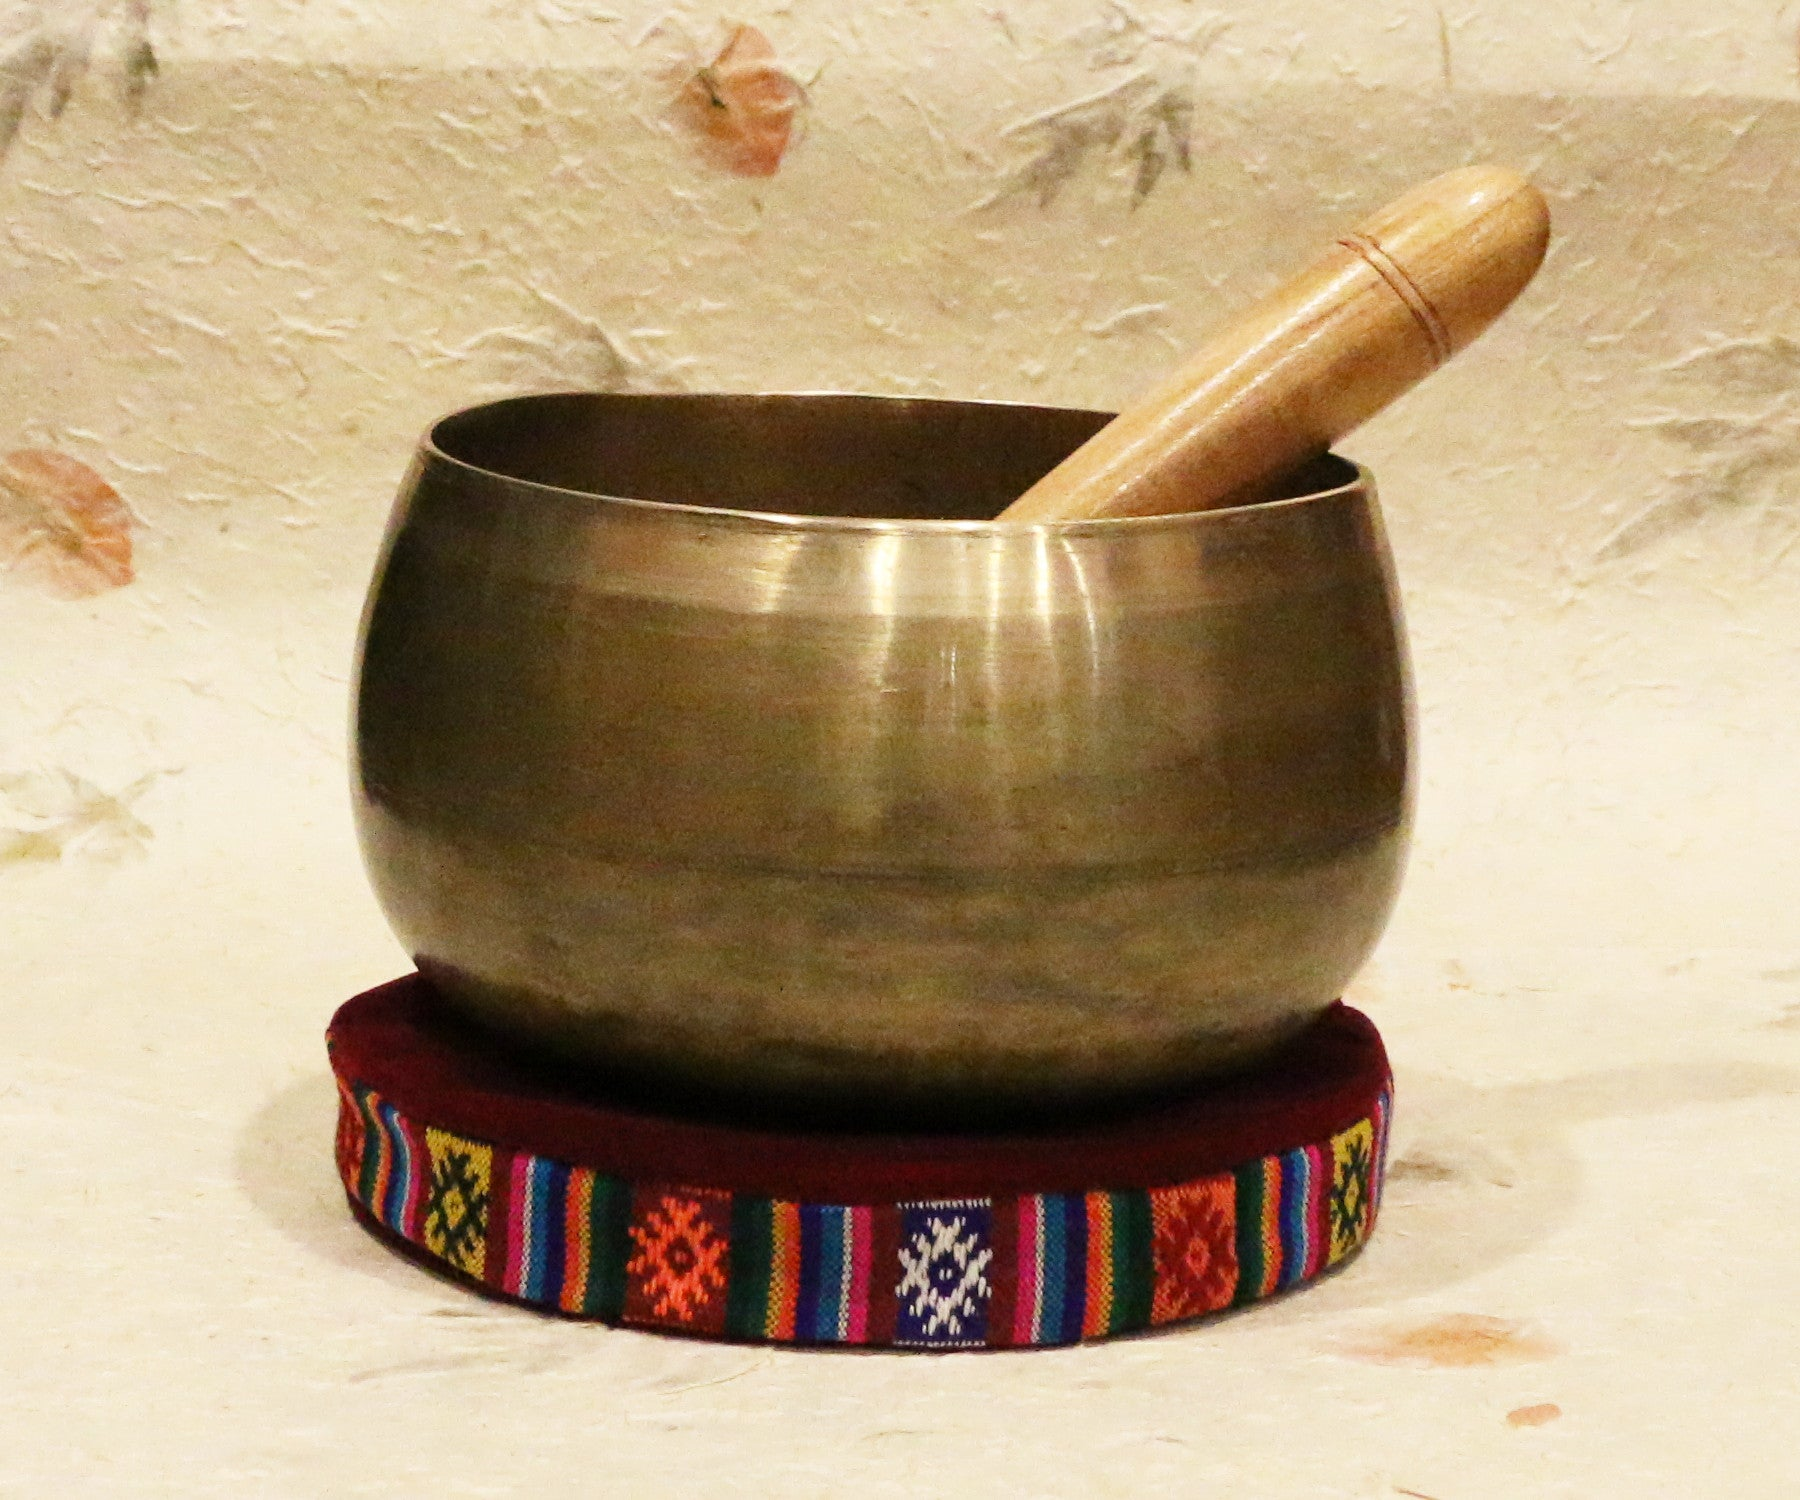 Old Singing Bowl - Tibet Arts & Healing